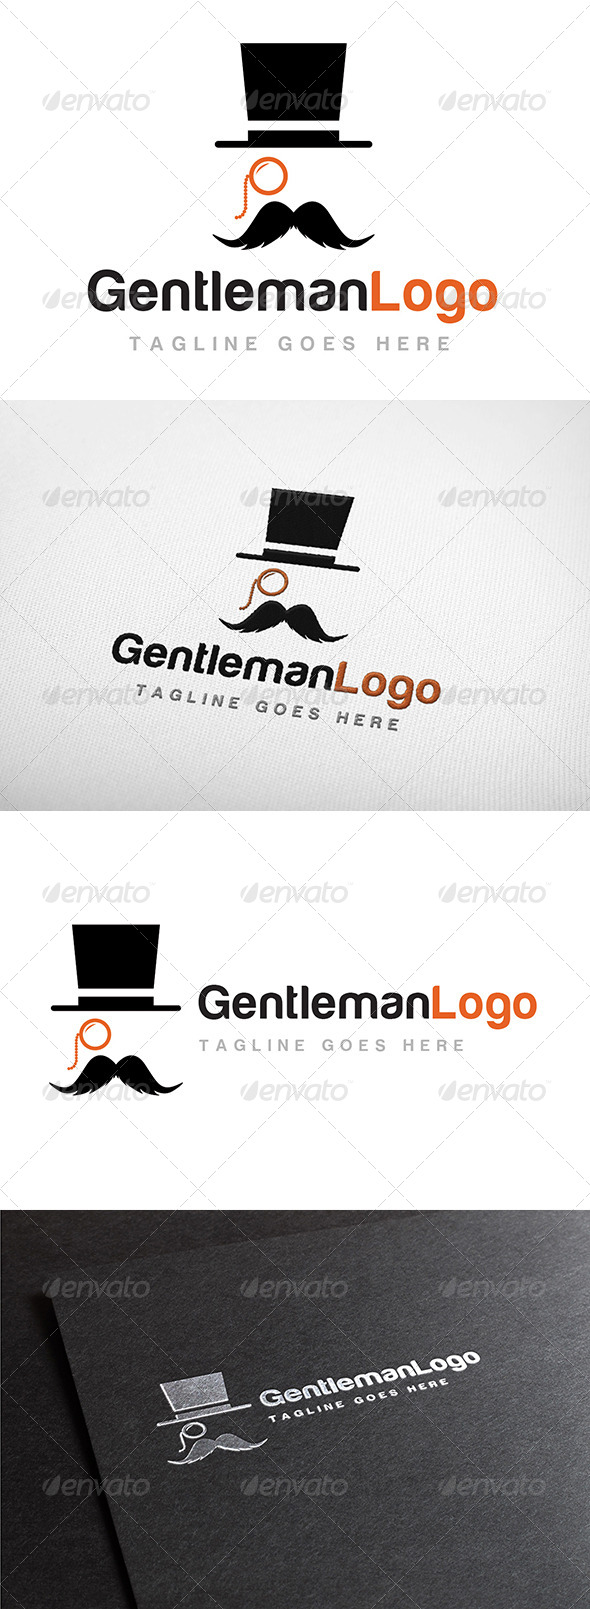 GraphicRiver Gentleman Logo 7156564